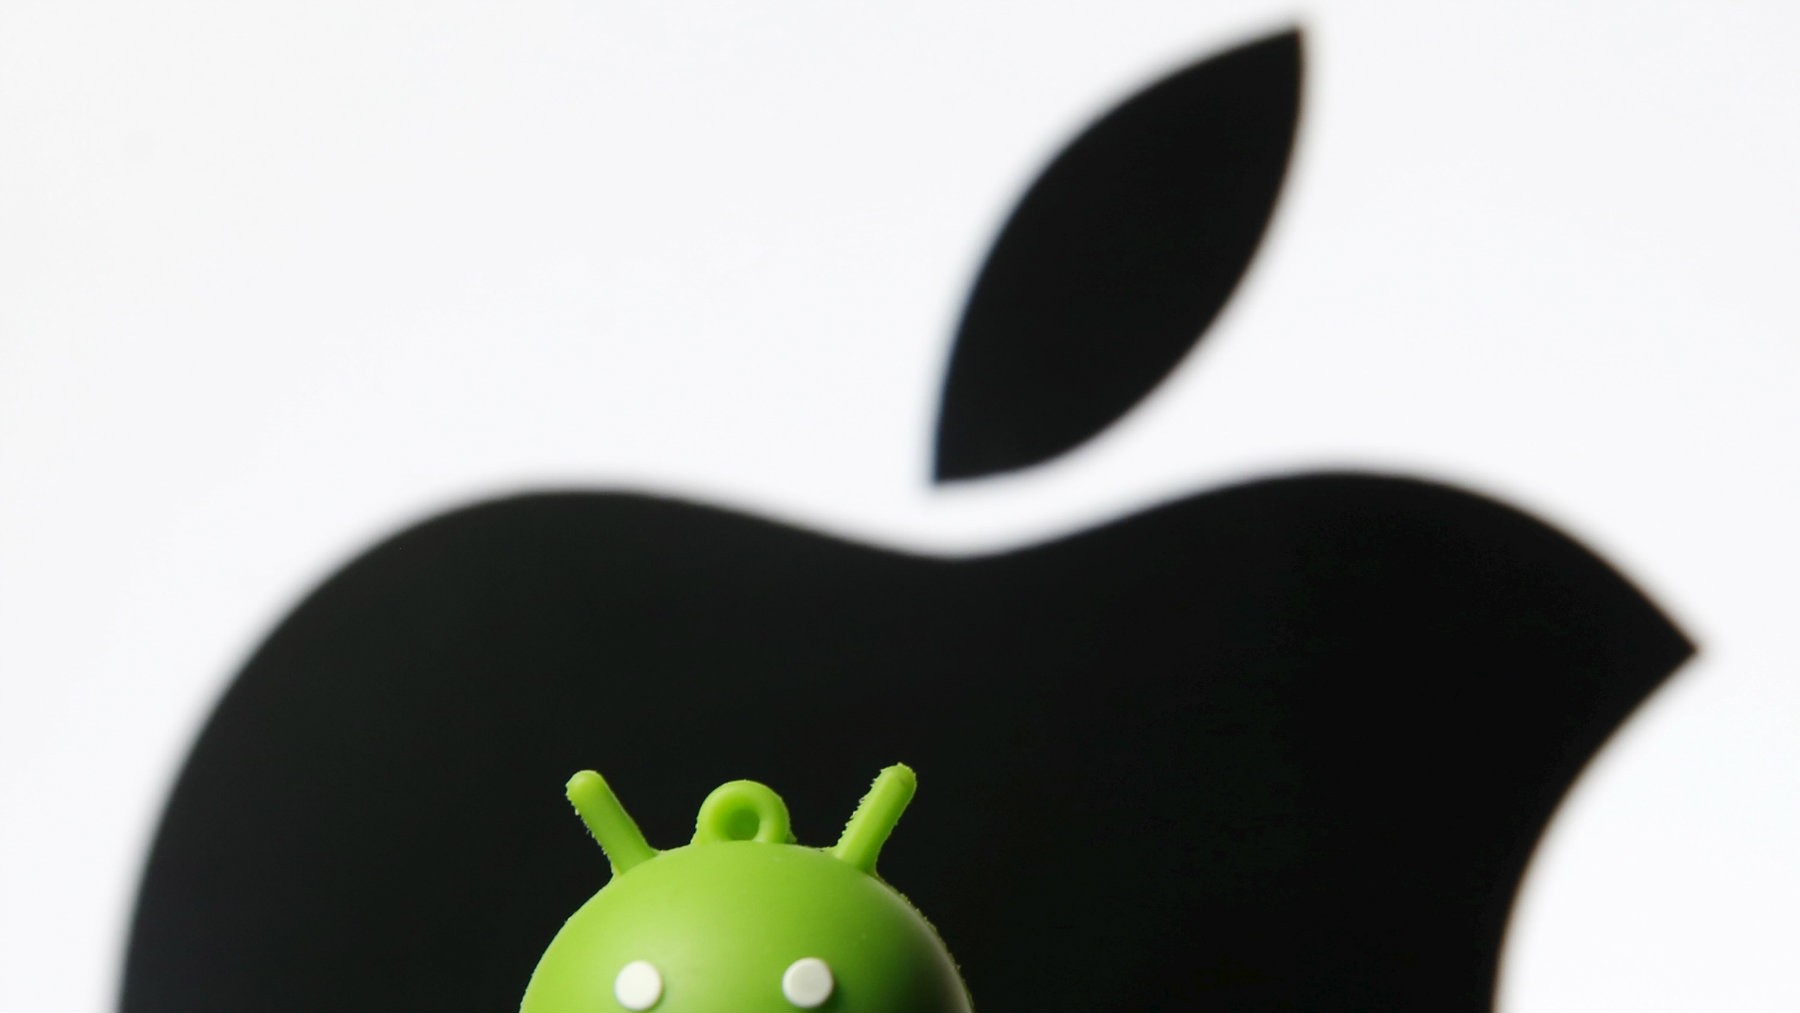 An Android mascot is seen in front of a displayed logo of Apple in this photo illustration taken in Zenica, Bosnia and Herzegovina, May 5, 2015. A U.S. appeals court on May 18, 2015 reversed part of a $930 million verdict that Apple Inc won in 2012 against Samsung Electronics Co Ltd, saying the iPhone maker's trademark-related appearance could not be protected. Some observers viewed the litigation as Apple's attempt to curtail the rapid rise of phones using Google Inc's rival Android operating software. Picture taken on May 5. REUTERS/Dado Ruvic